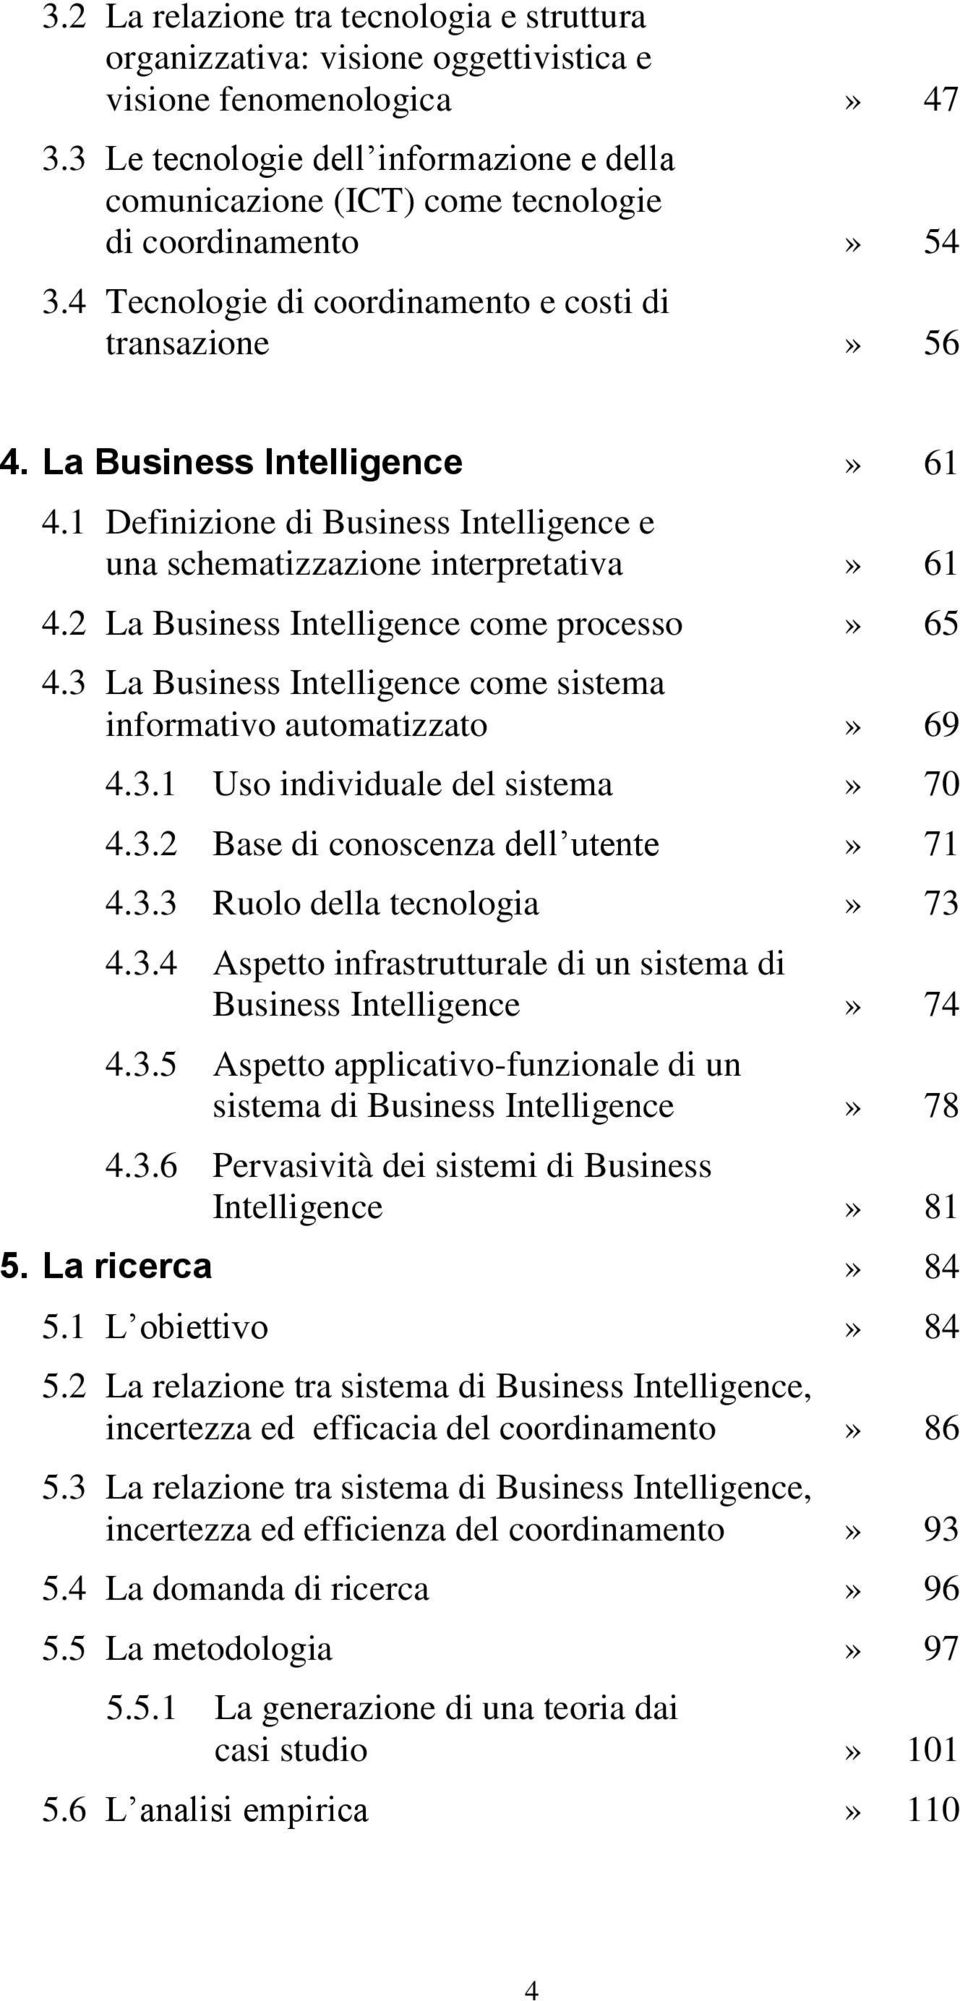 1 Definizione di Business Intelligence e una schematizzazione interpretativa» 61 4.2 La Business Intelligence come processo» 65 4.